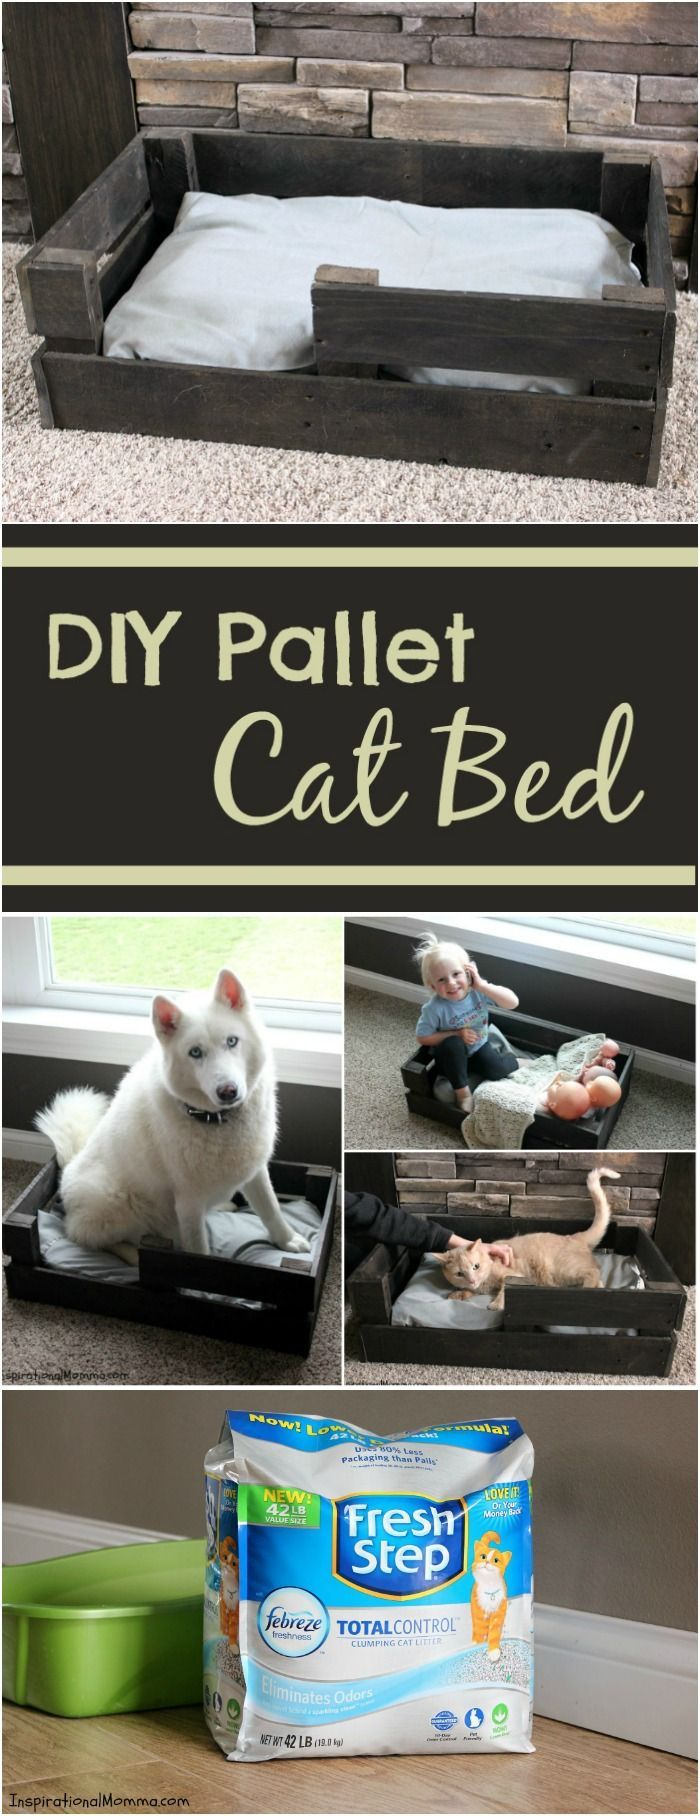 Spoil your fur-baby and create this DIY Pallet Cat Bed today! It is both simple and inexpensive. #YouGottaBeKittenMe #CollectiveBias #Ad #FreshStepLitter #SamsClub